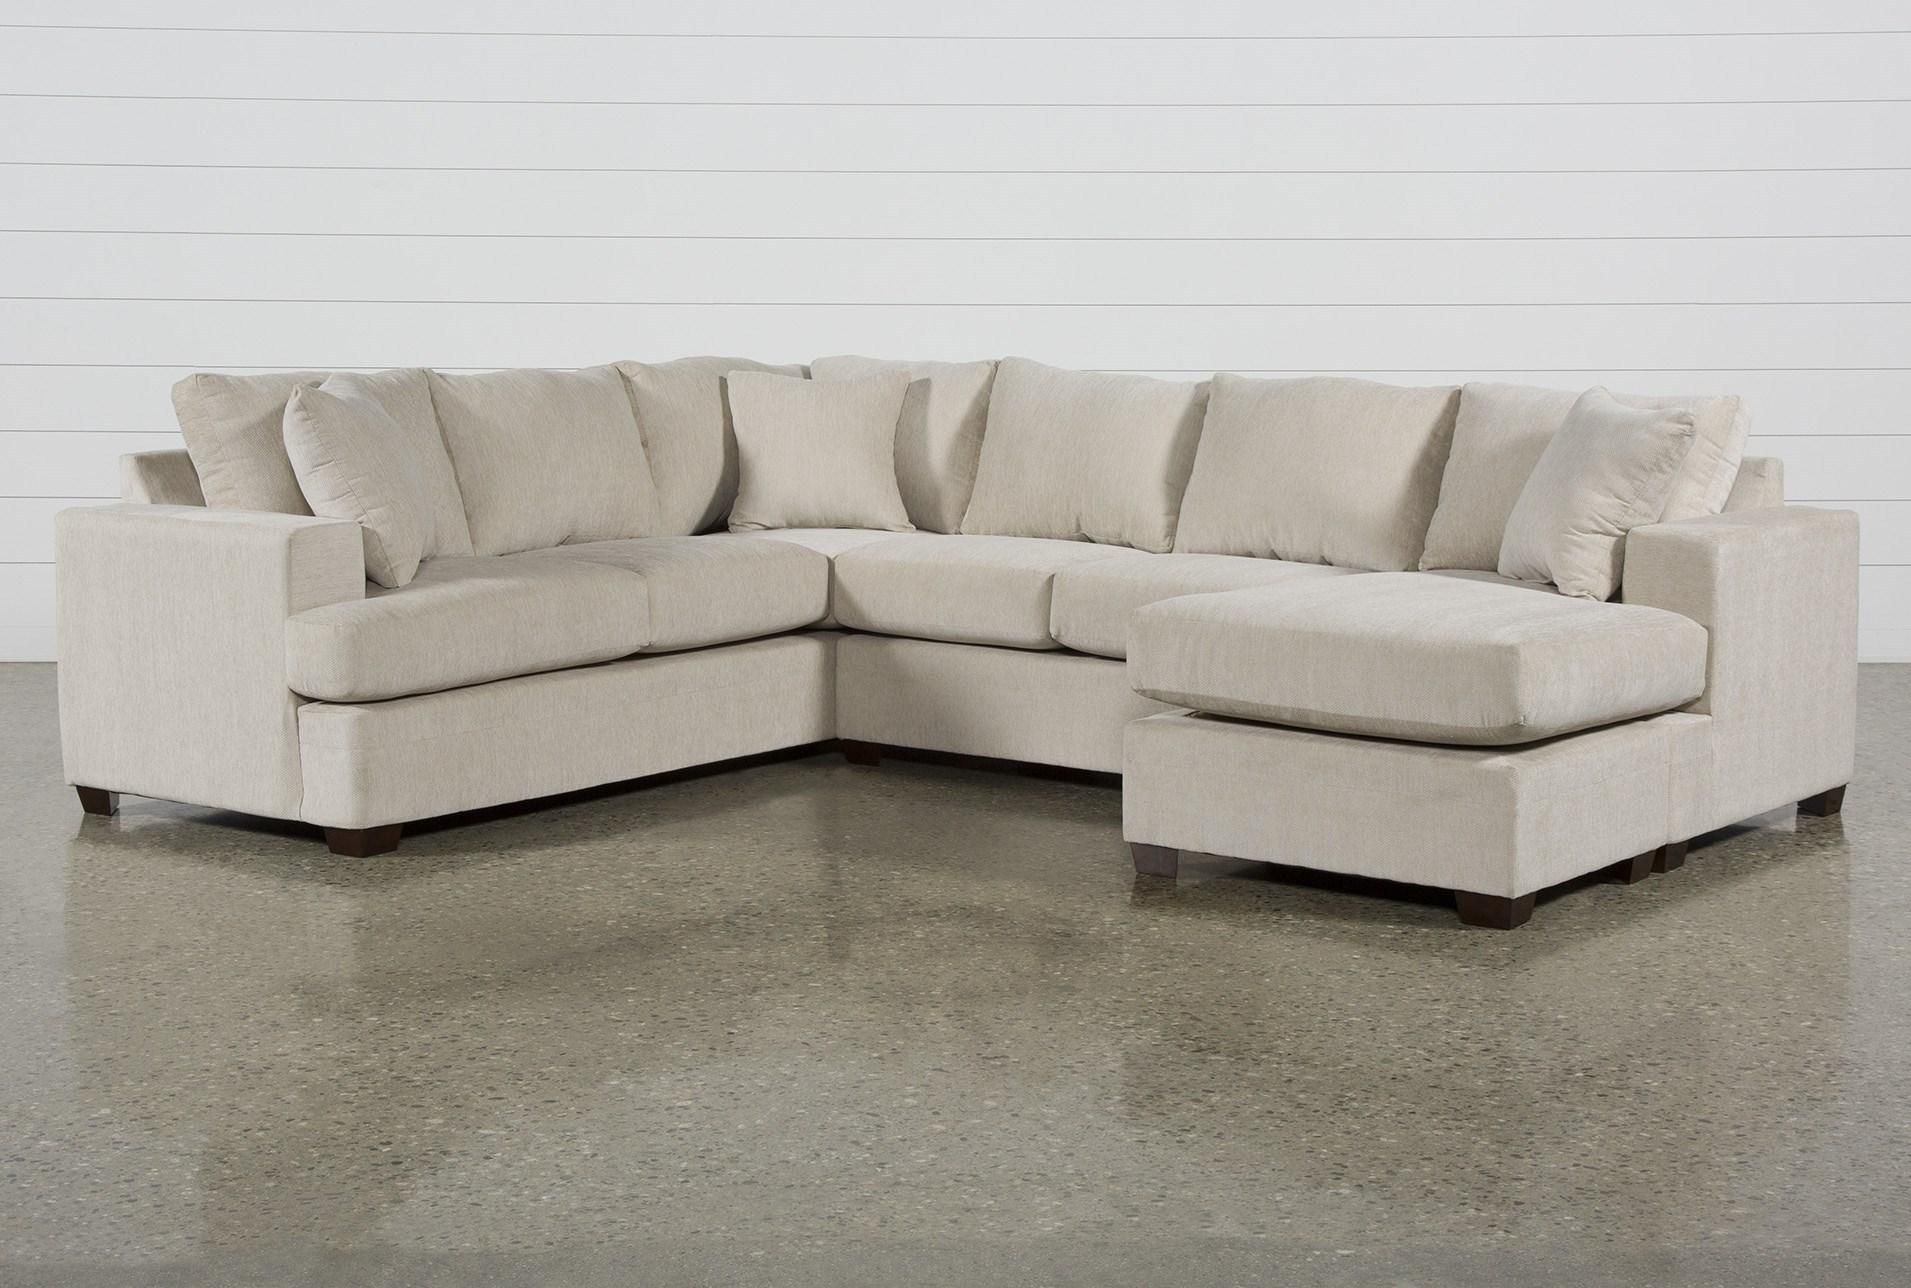 Kerri Sand 2 Piece Sectional With Right Arm Facing Sofa Chaise Chaise Sofa Living Spaces Furniture Sectional Sofa